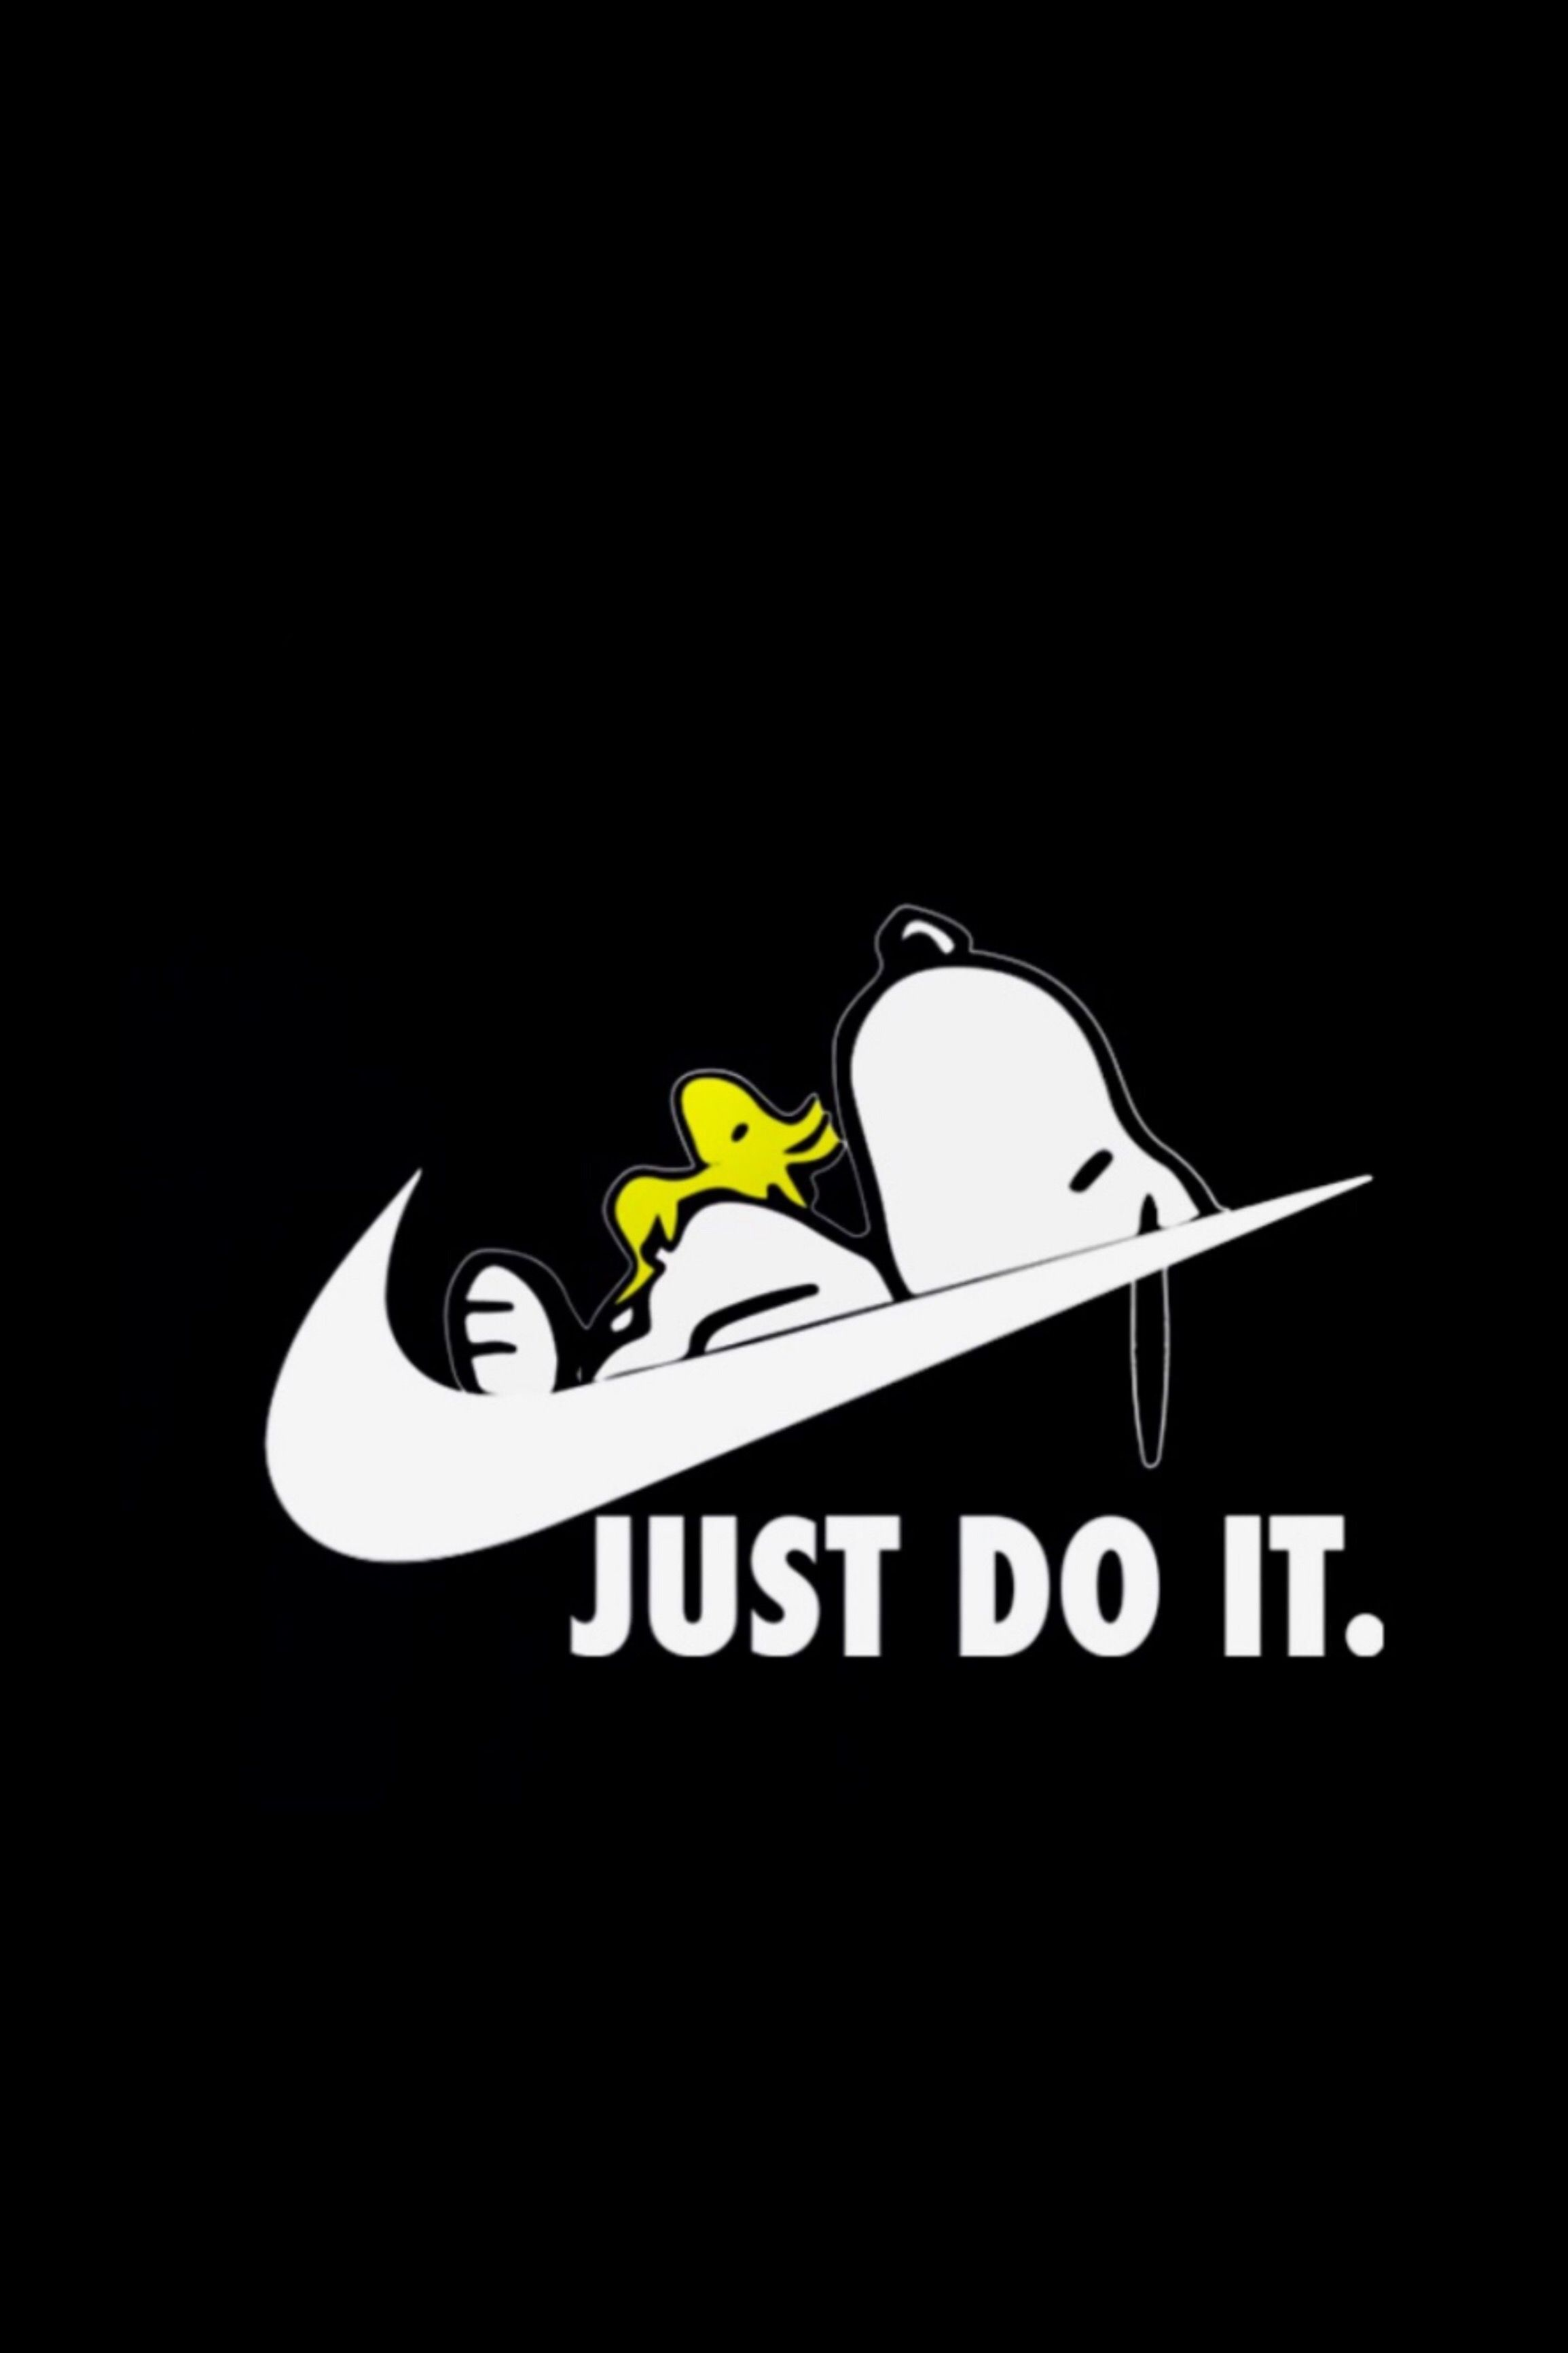 Pin By Ali Y On Snoopy Friends Goodnight Snoopy Snoopy Dance Snoopy Quotes